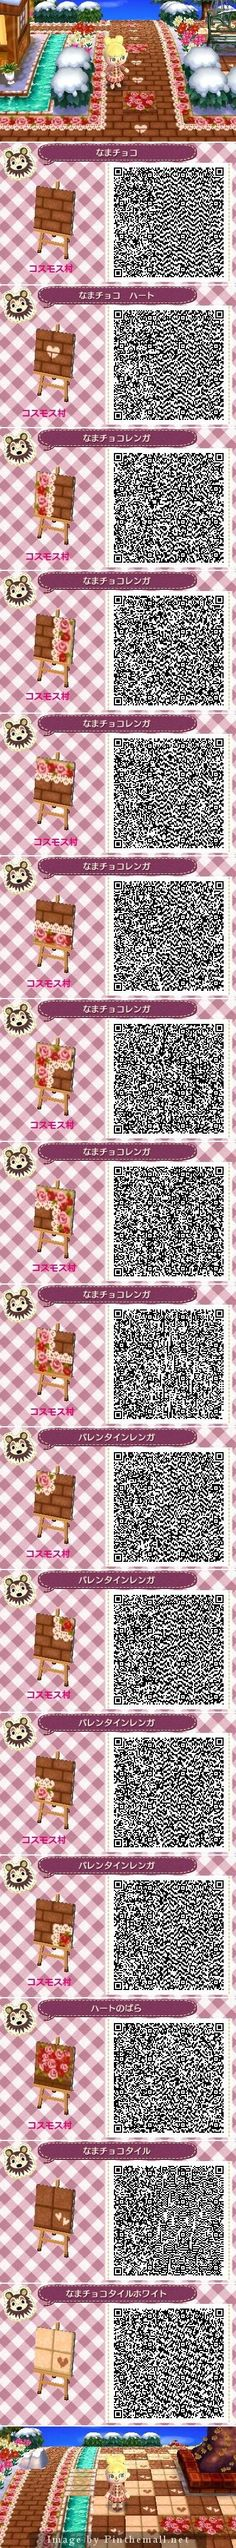 Animal crossing new leaf zelda qr code animal crossing Boden qr codes animal crossing new leaf